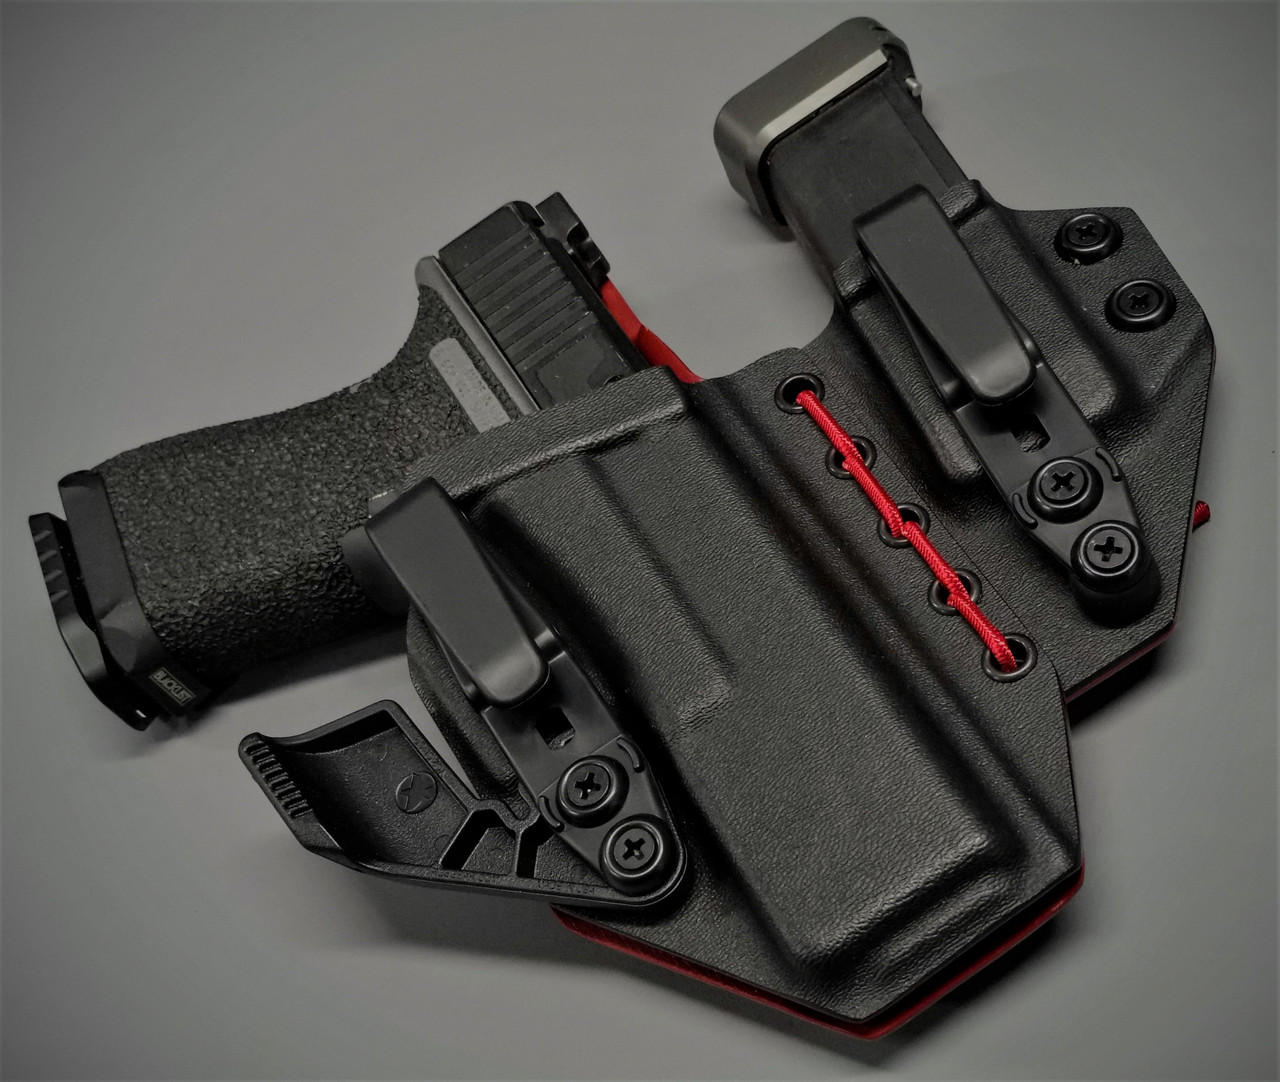 Glock 17 Appendix Carry Rig